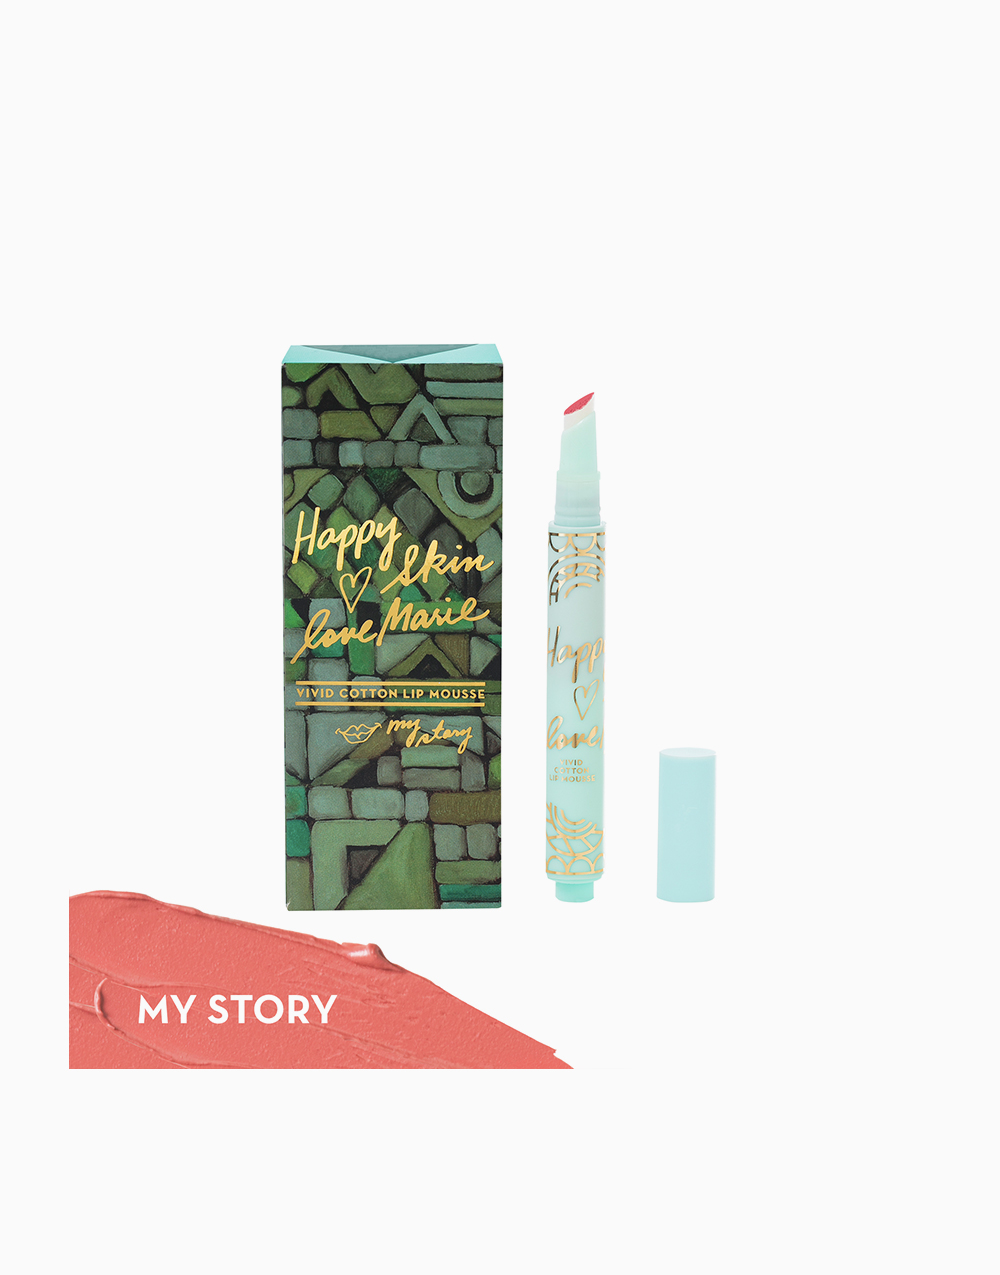 Happy Skin x Love Marie Vivid Cotton Lip Mousse by Happy Skin   My Story